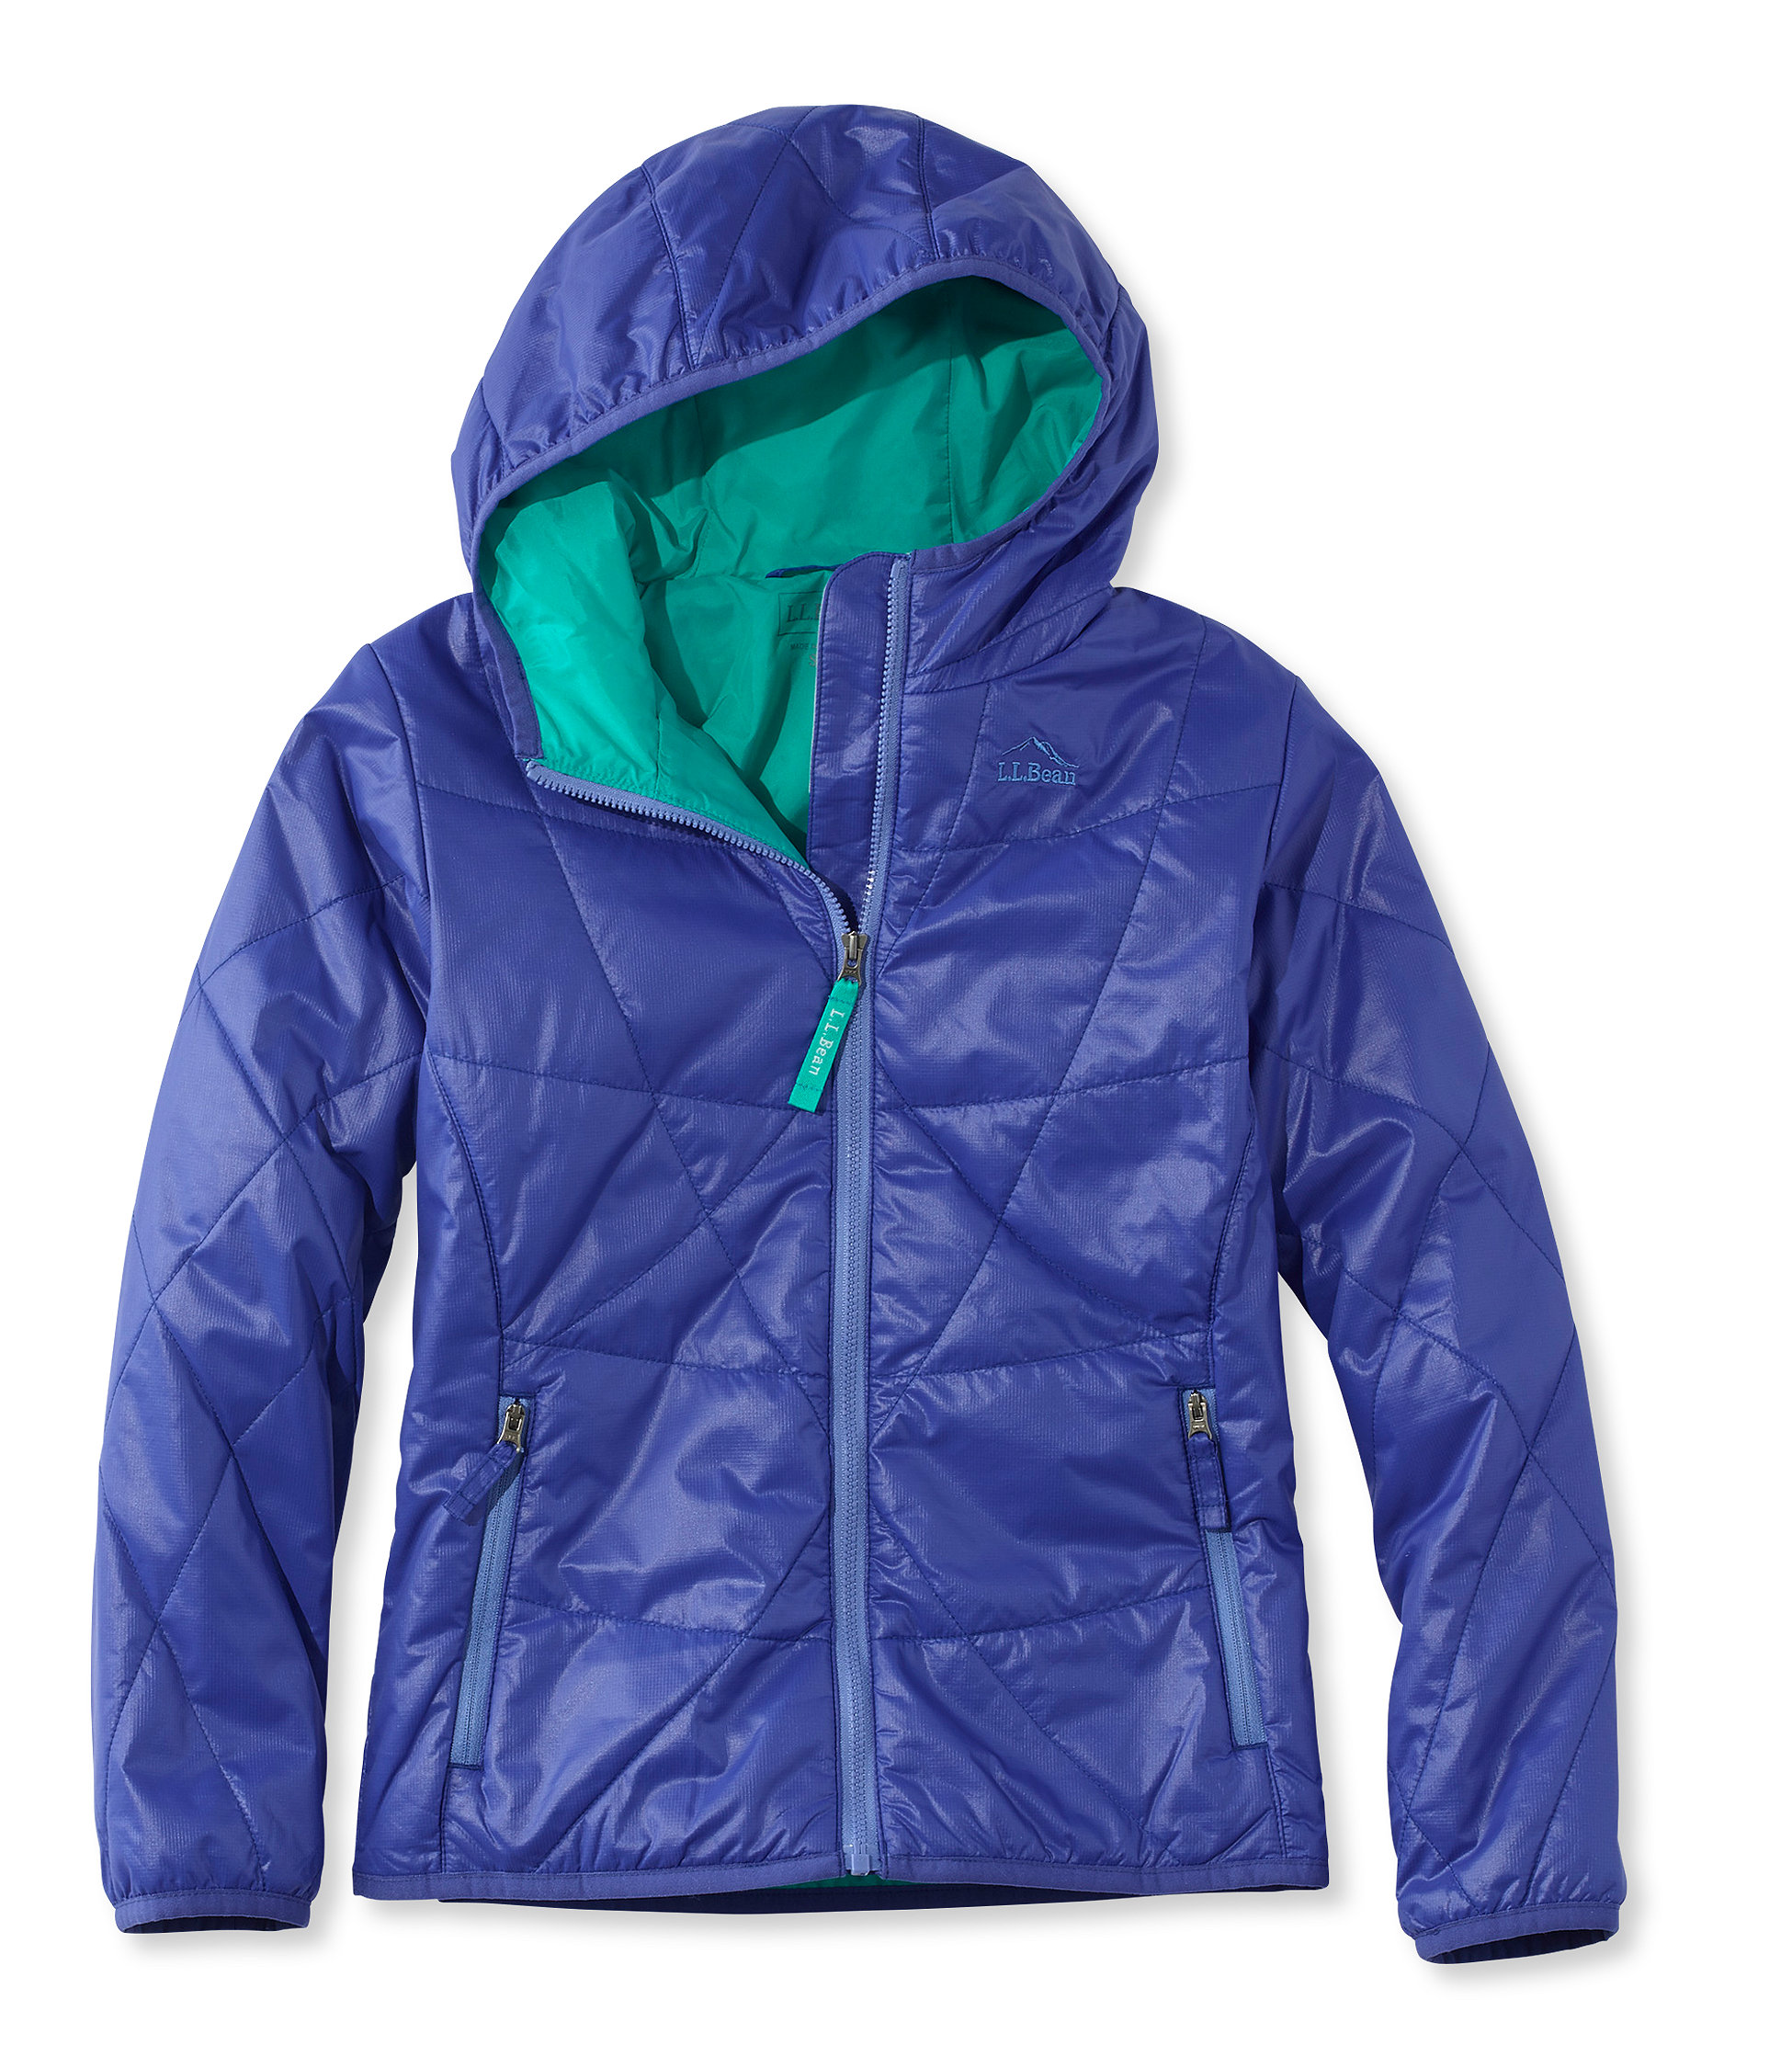 L.L.Bean Puff-N-Stuff Jacket